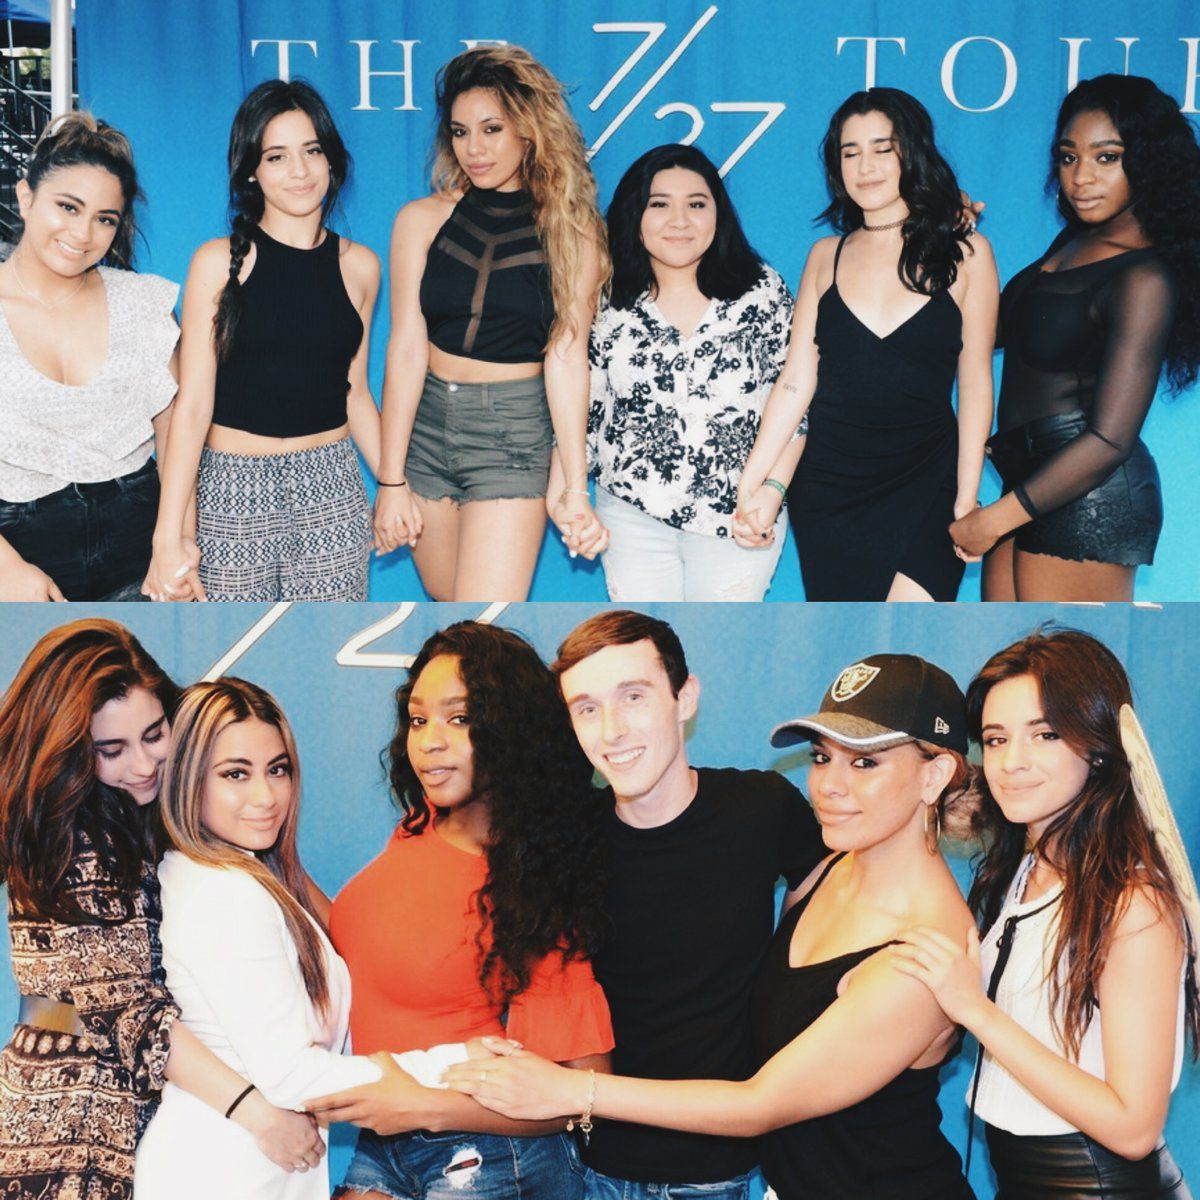 Fifth harmony with fans at meet and greet 5h meet and greet fifth harmony with fans at meet and greet m4hsunfo